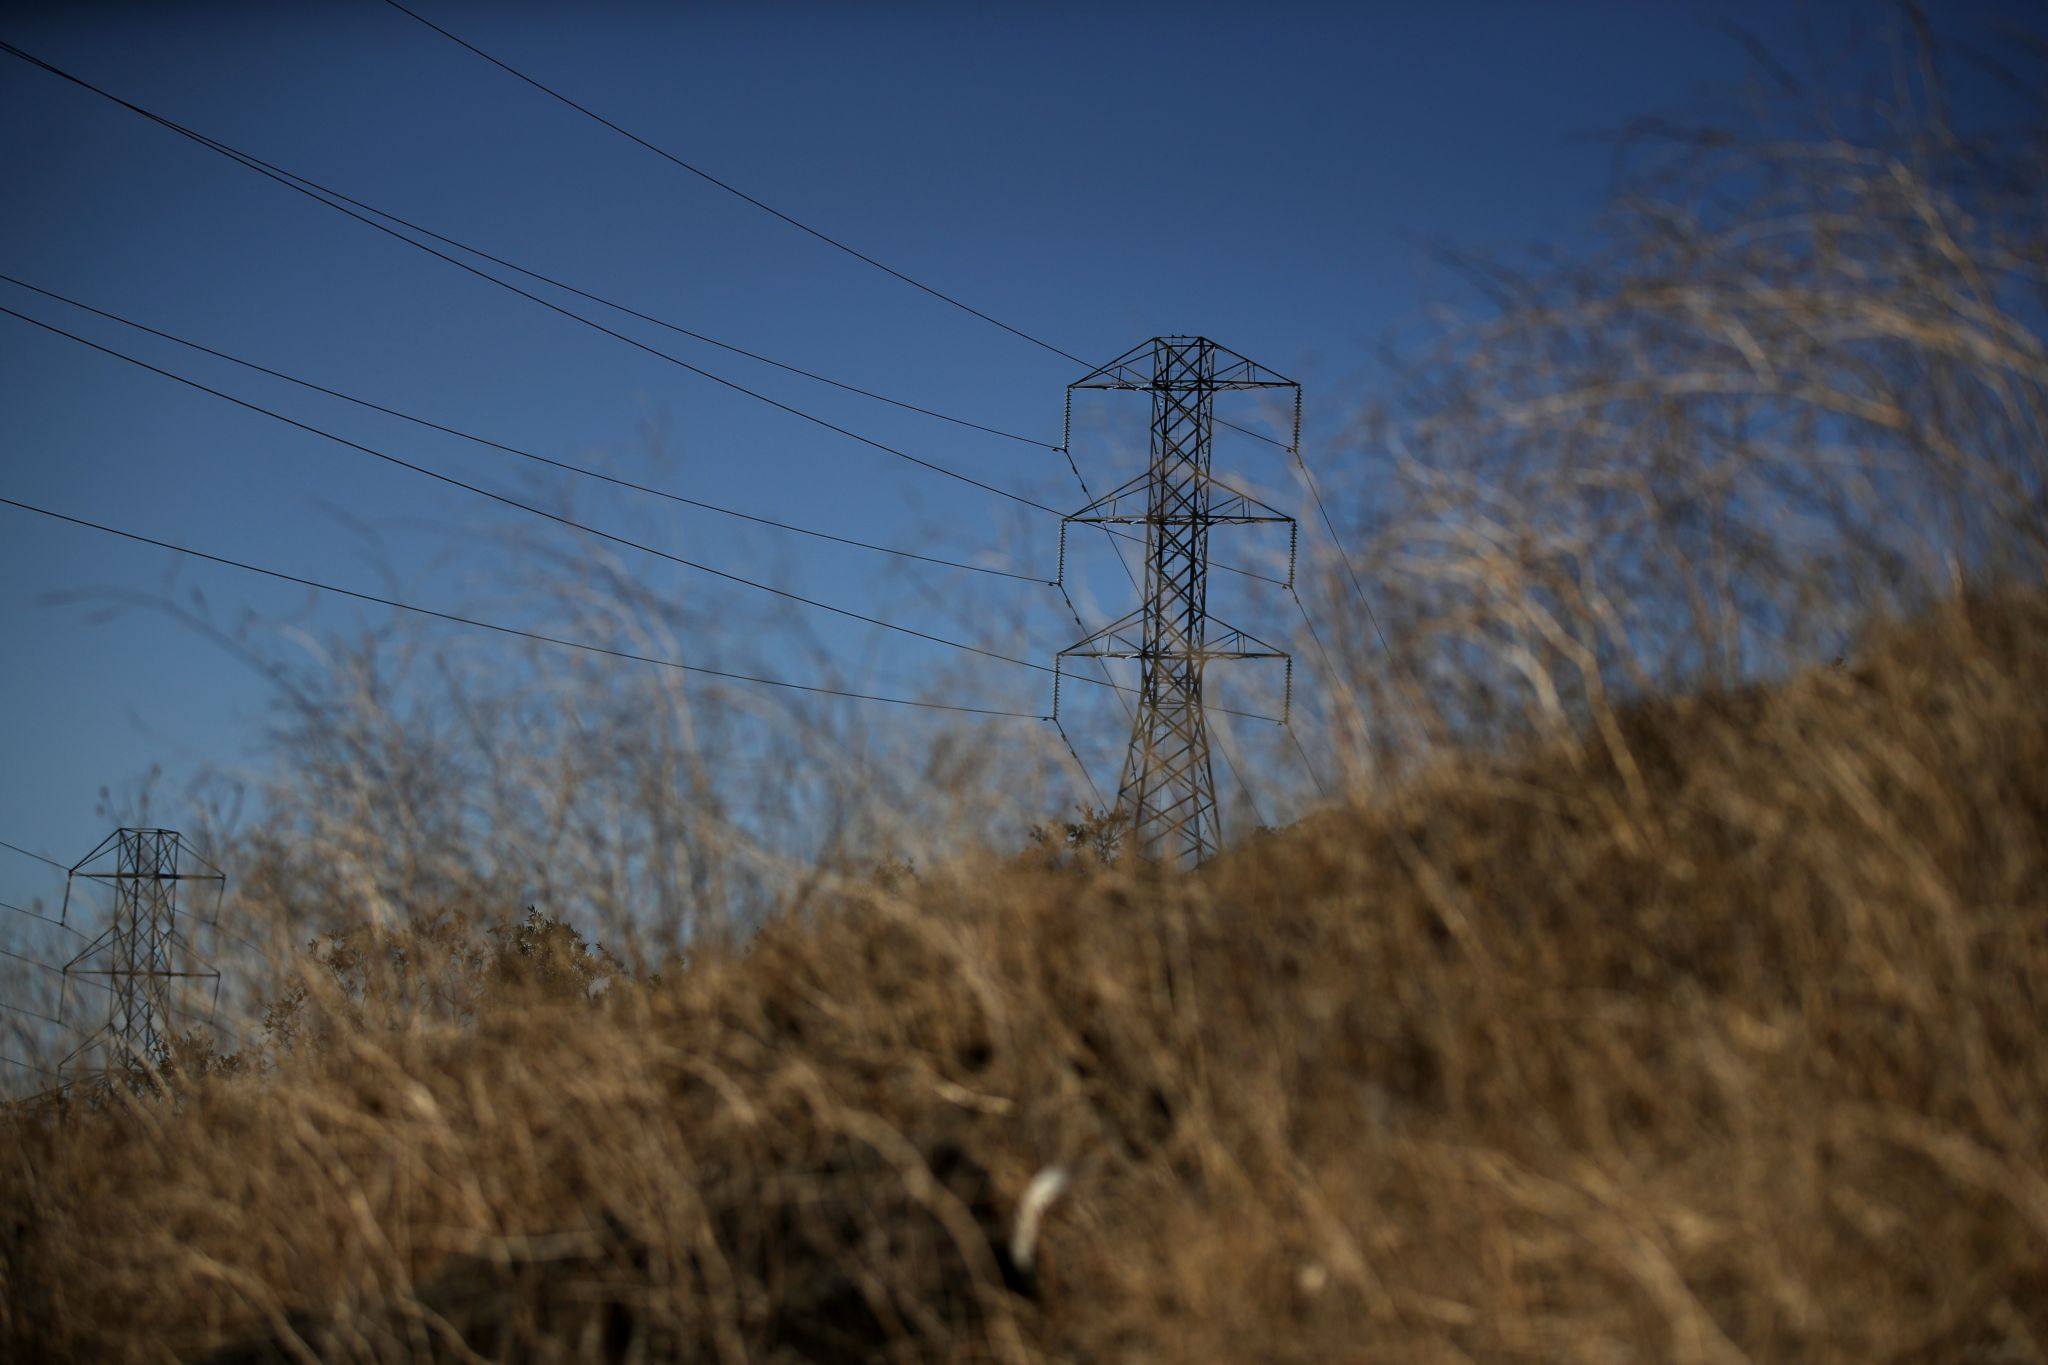 PG&E prepares to potentially cut power in 15 California counties